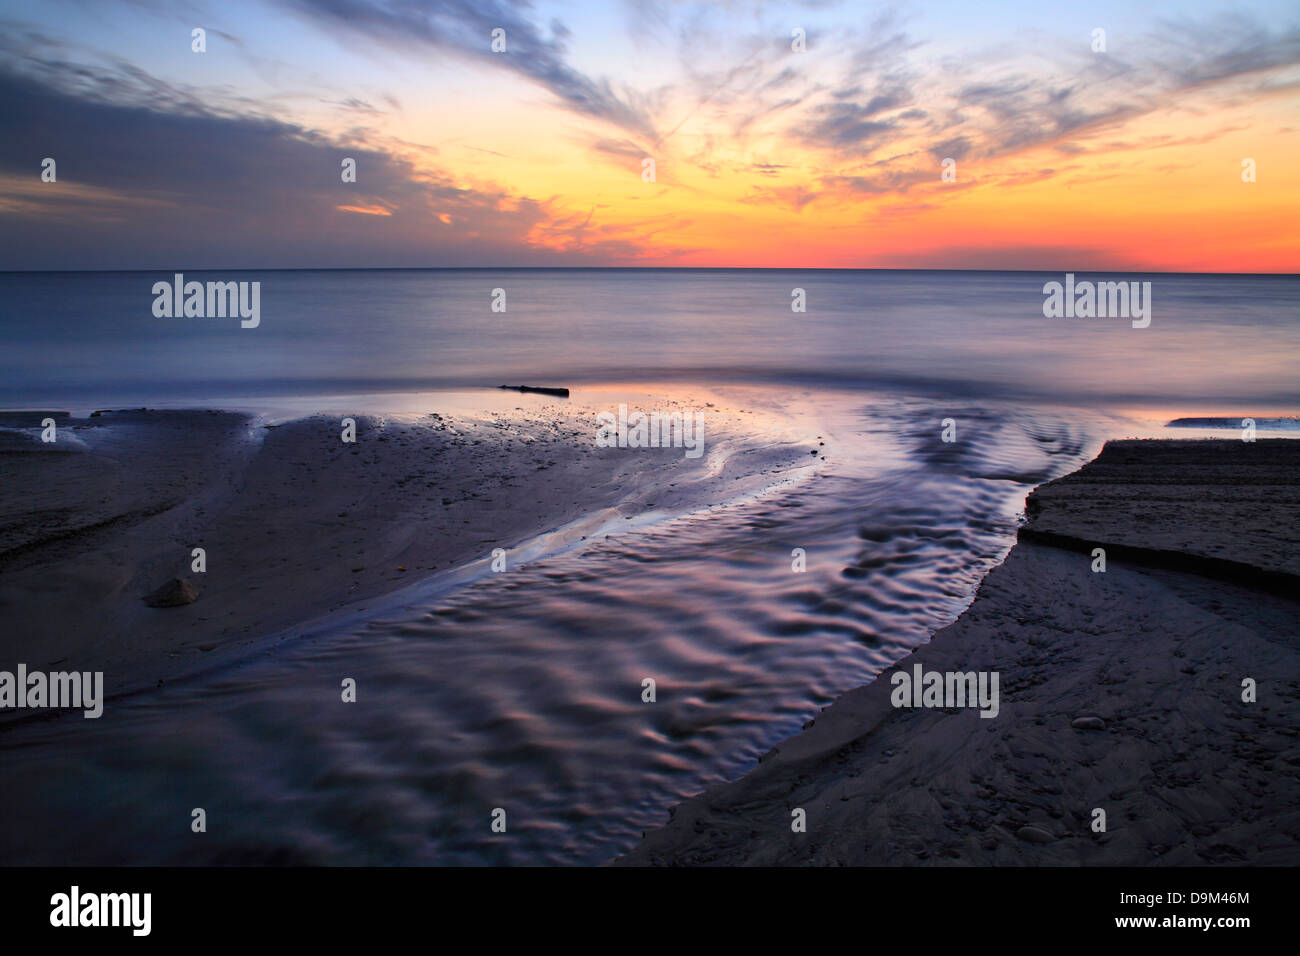 A Blazing Sunset Over Lake Erie At The Mouth Of Crooked Creek, Dunkirk New York, USA Stock Photo